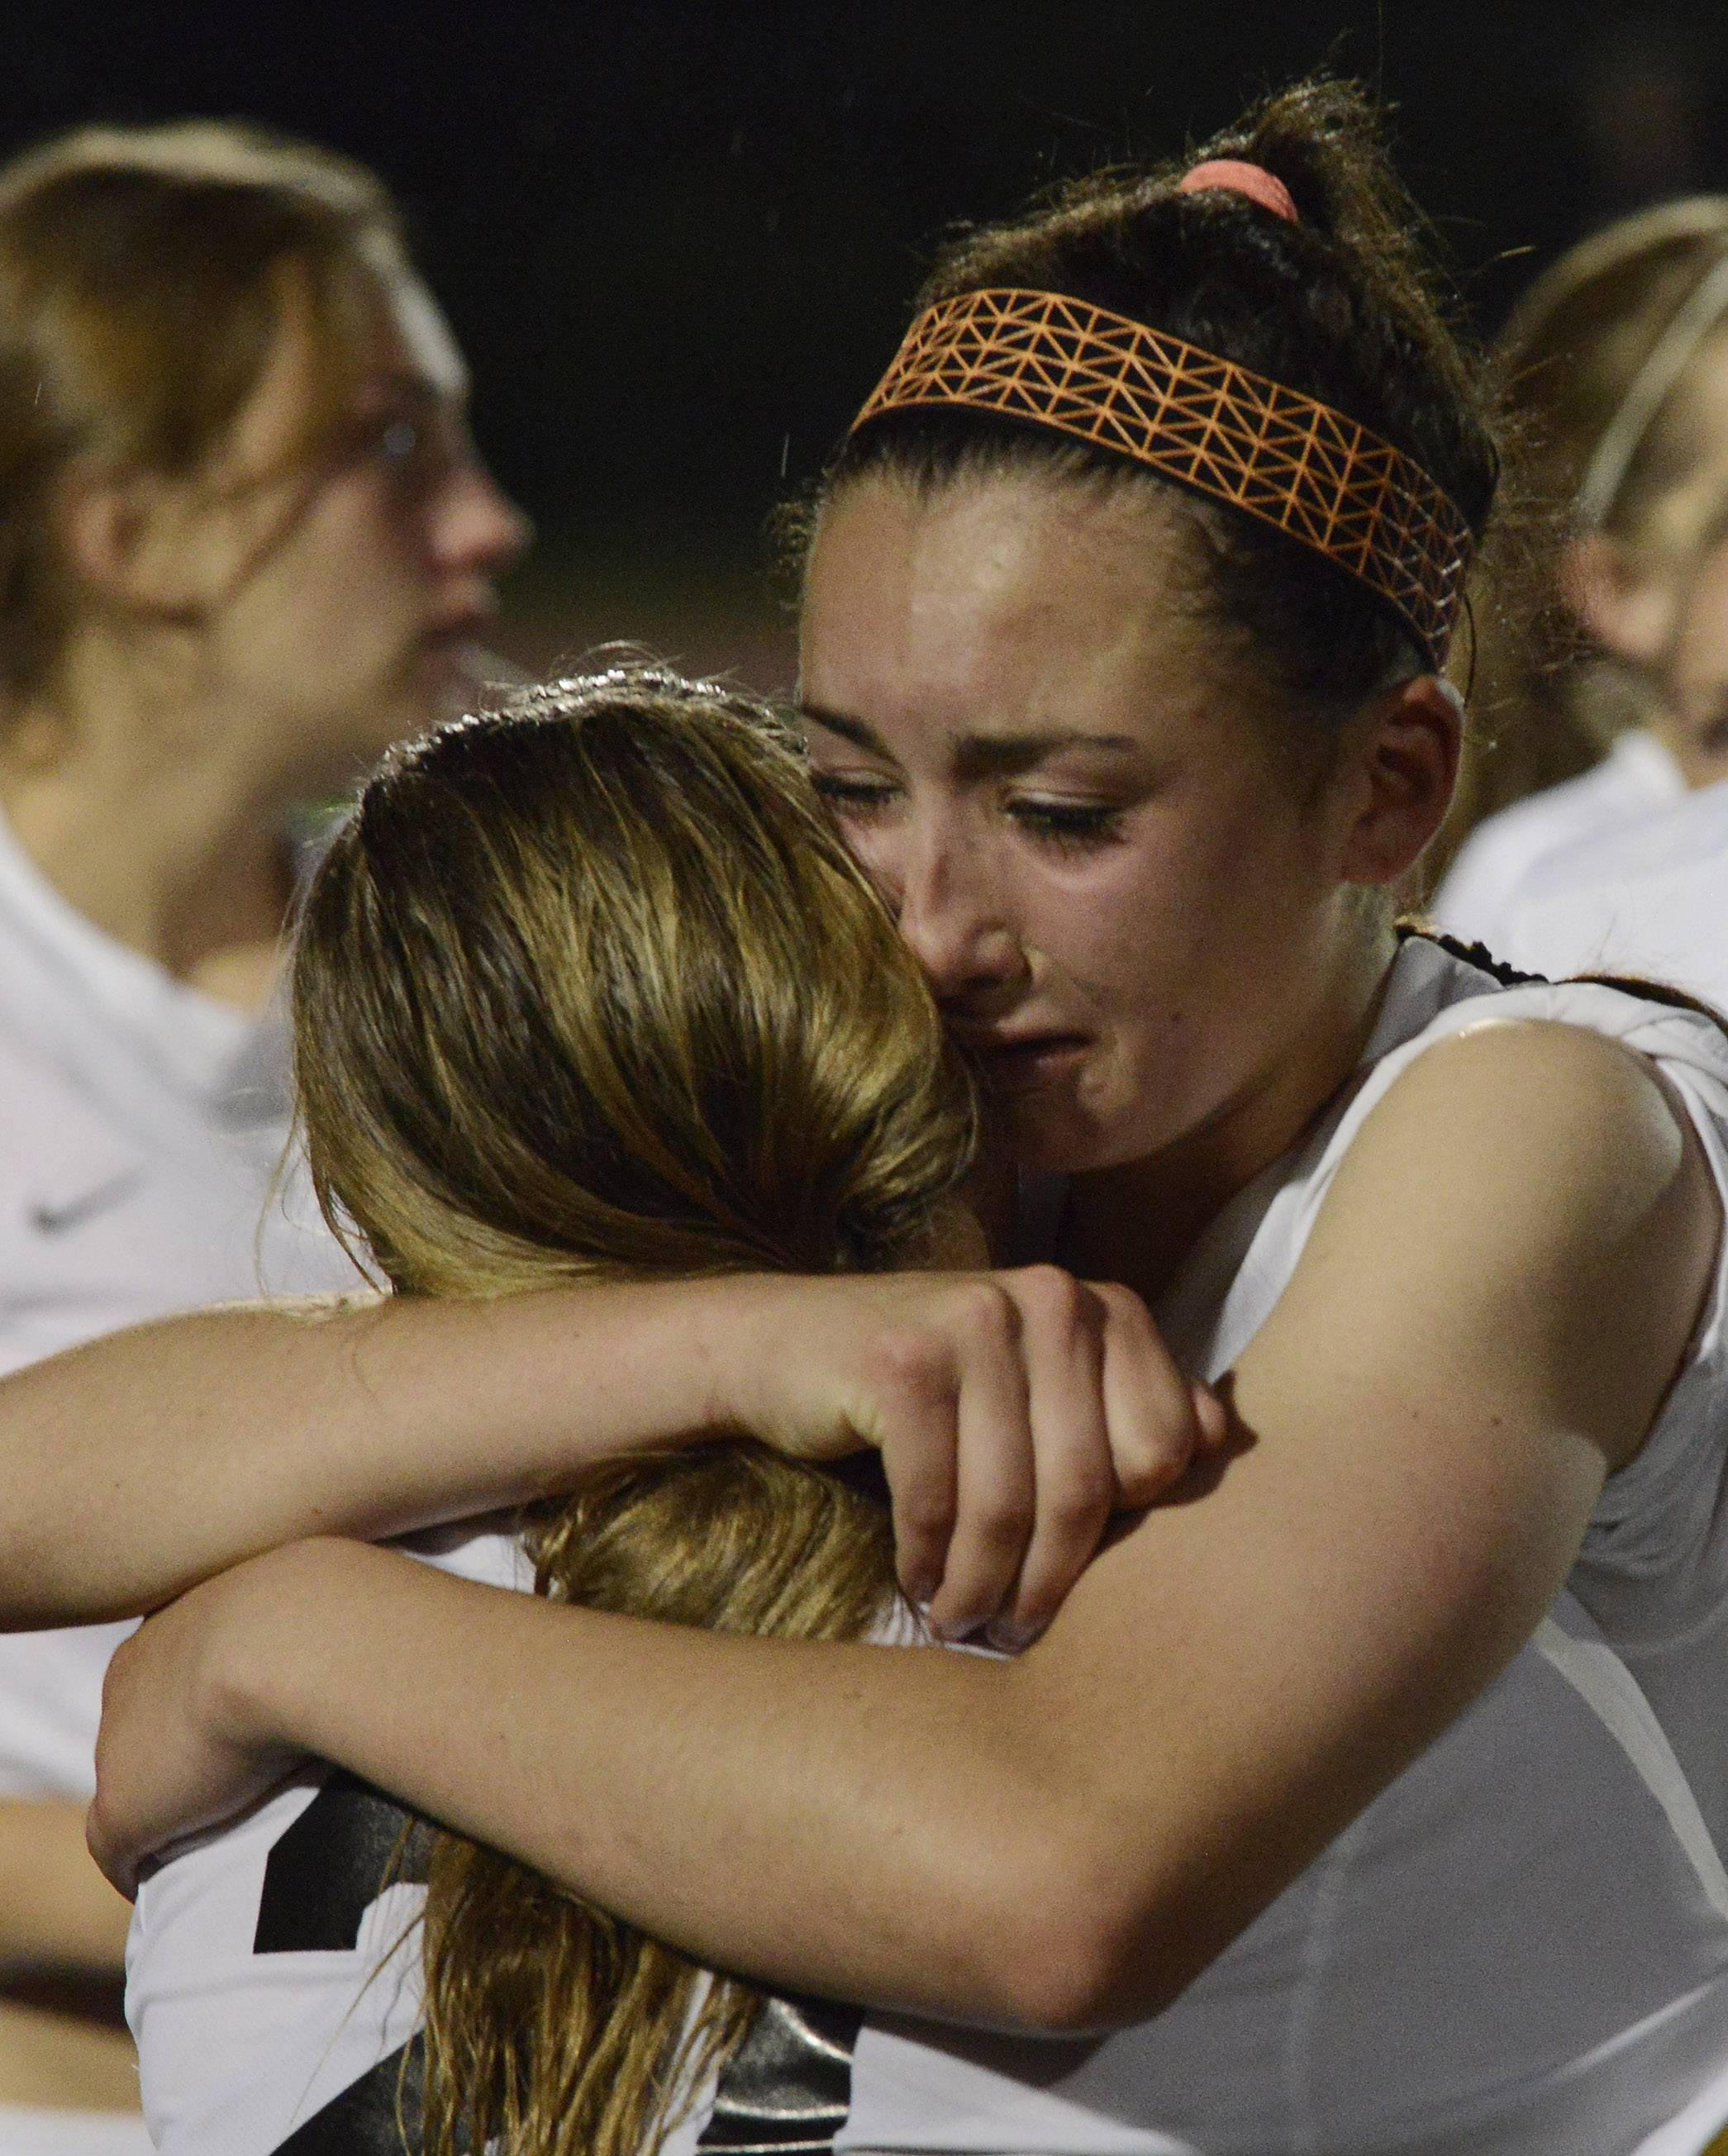 Mallory Moltenhauler, right, of St. Charles East hugs teammate Amanda Hilton following their team's 1-0 loss to New Trier during the girls soccer Class 3A state final at North Central College in Naperville Saturday.